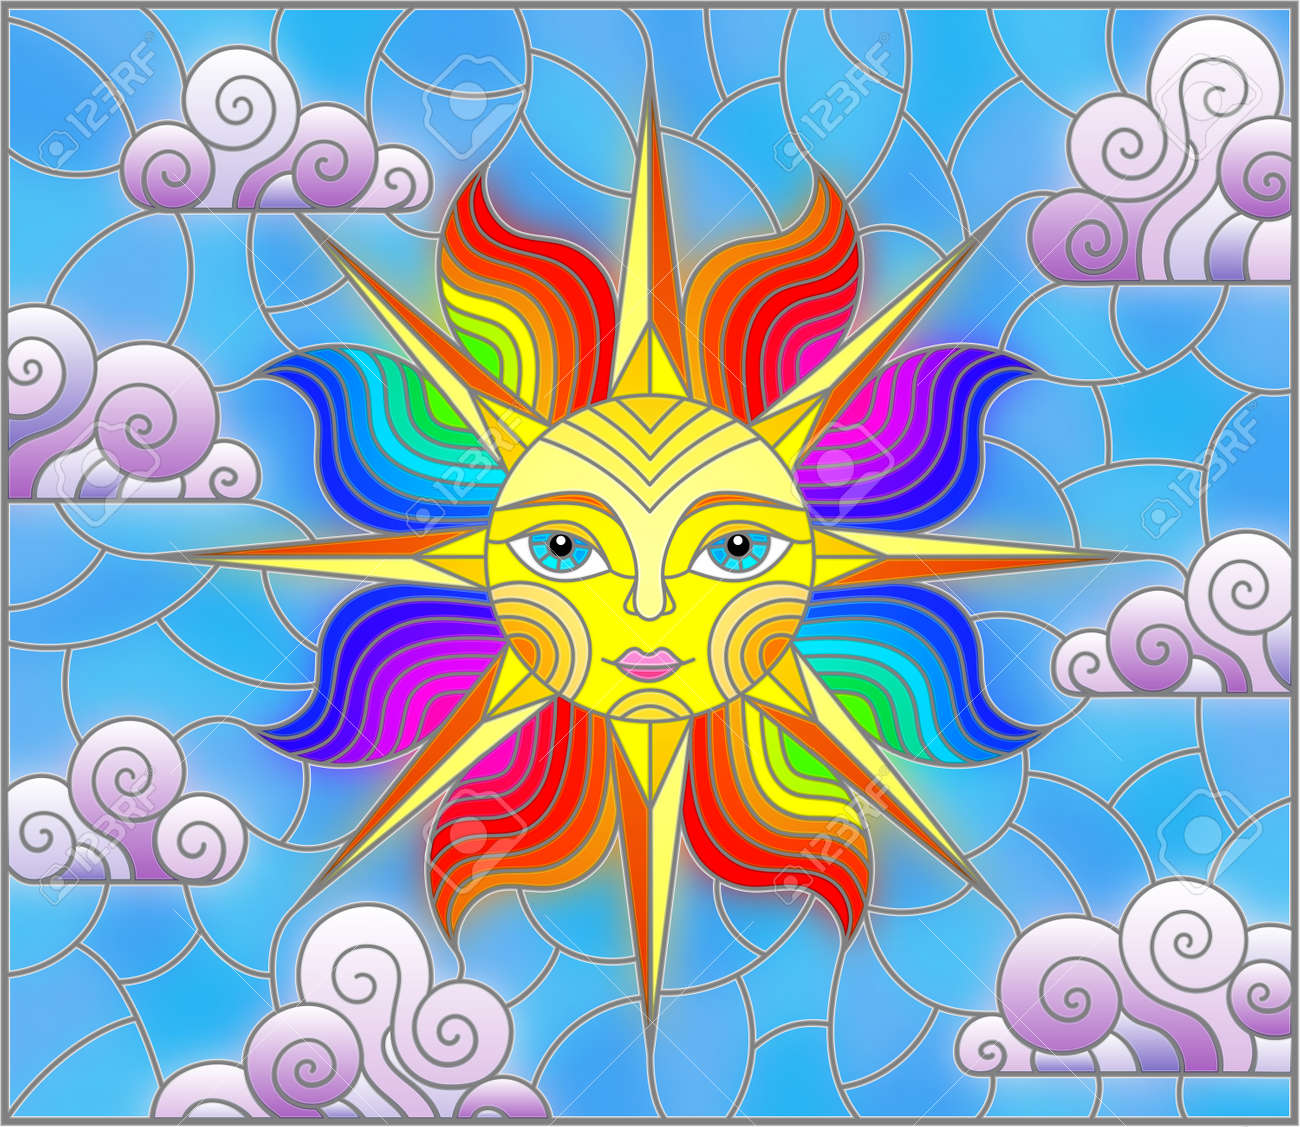 Illustration in stained glass style with fabulous sun with the face on the background of sky and clouds, oval image - 146864431